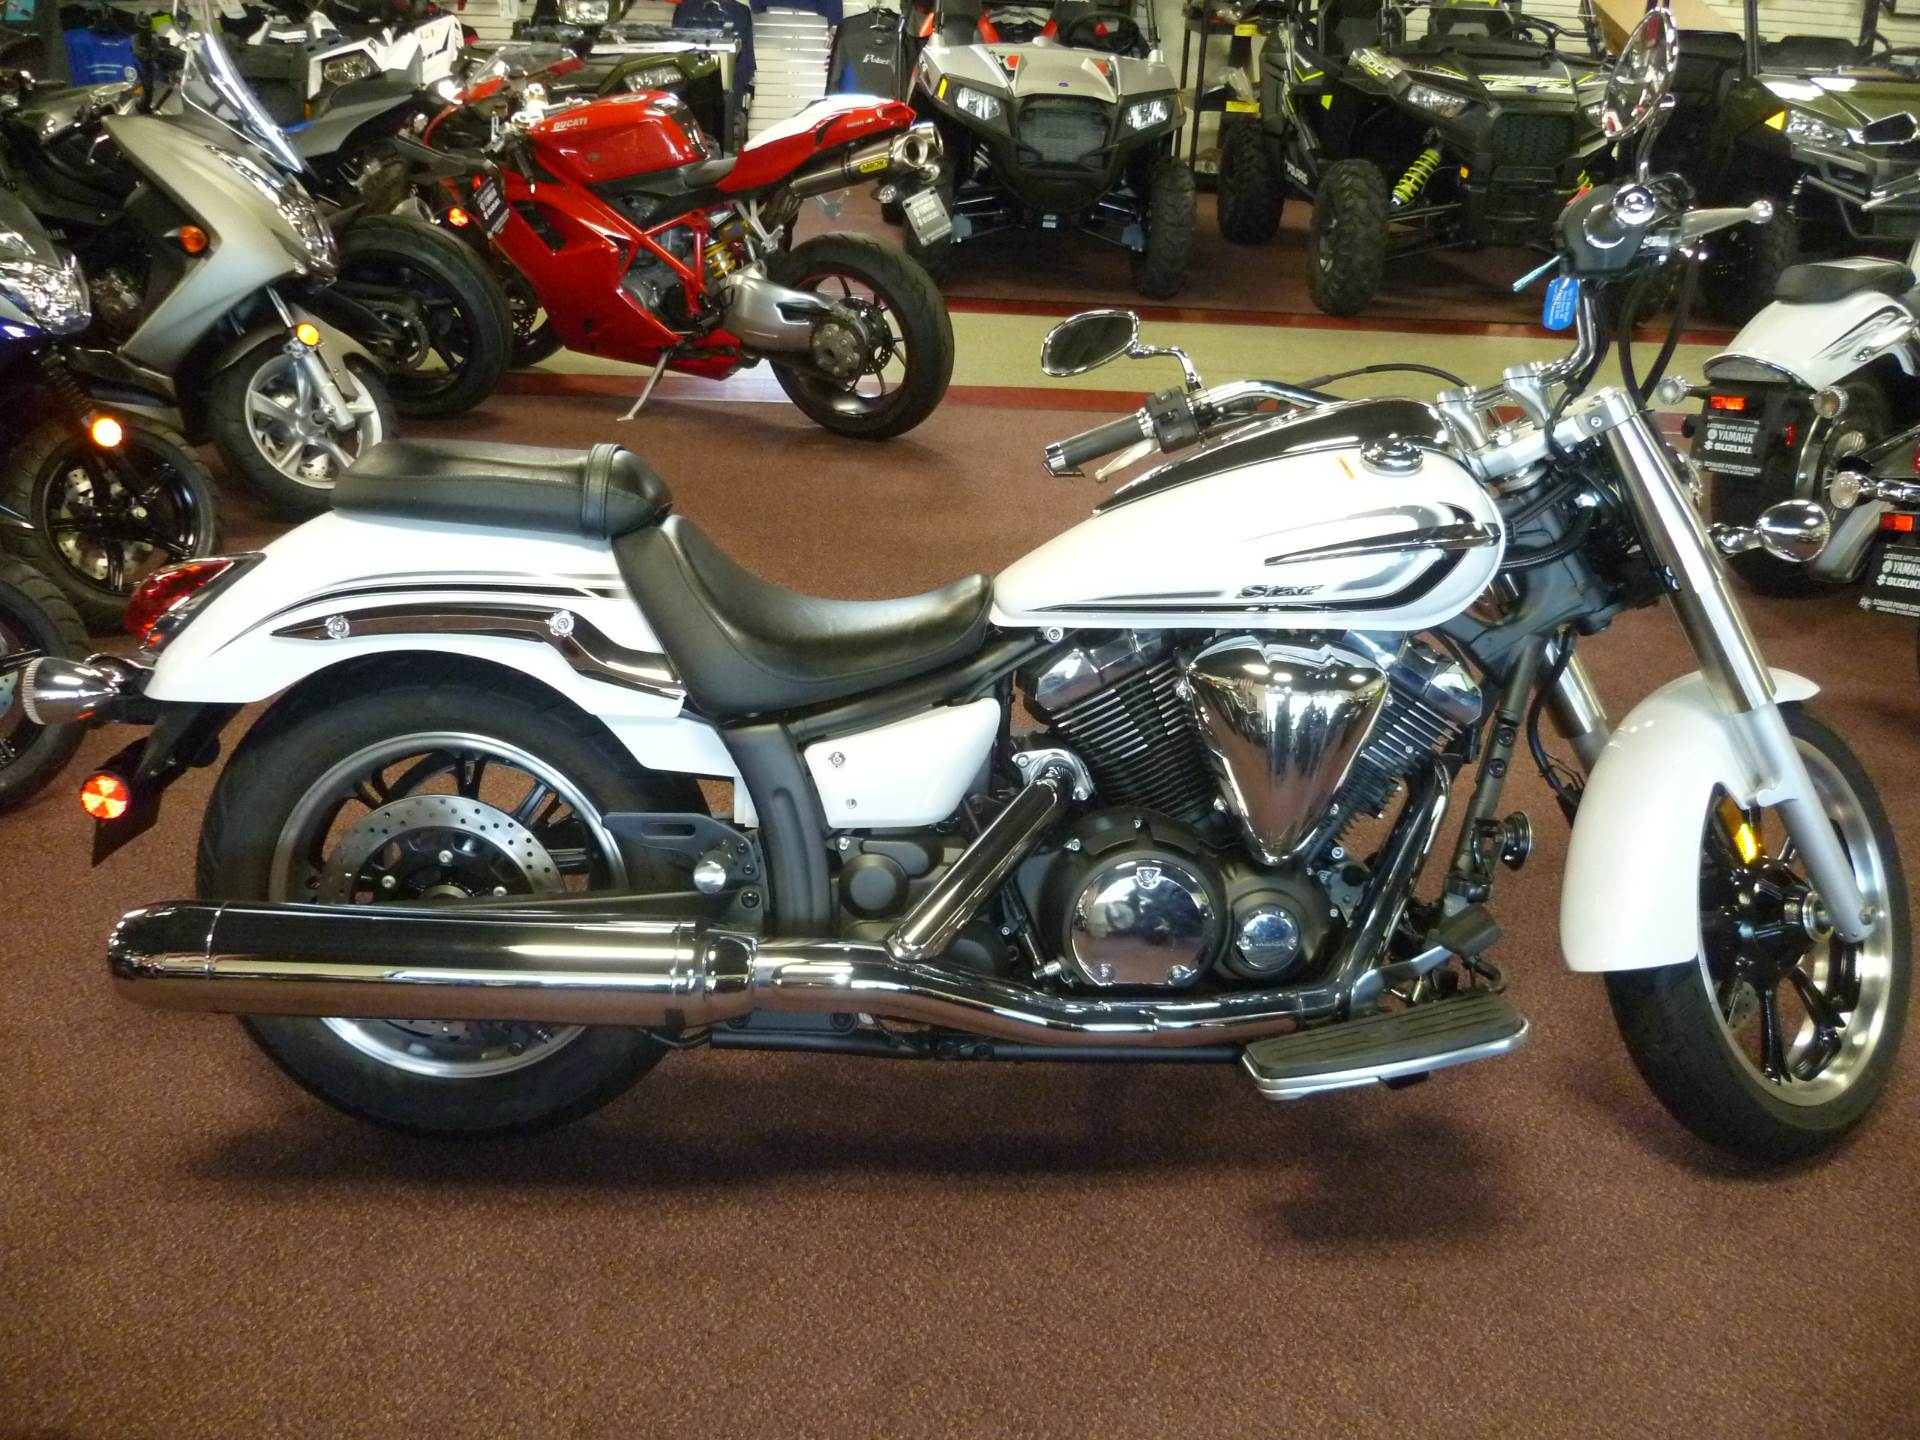 Used 2013 Yamaha V Star 950 Motorcycles in Union Grove, WI | Stock ...